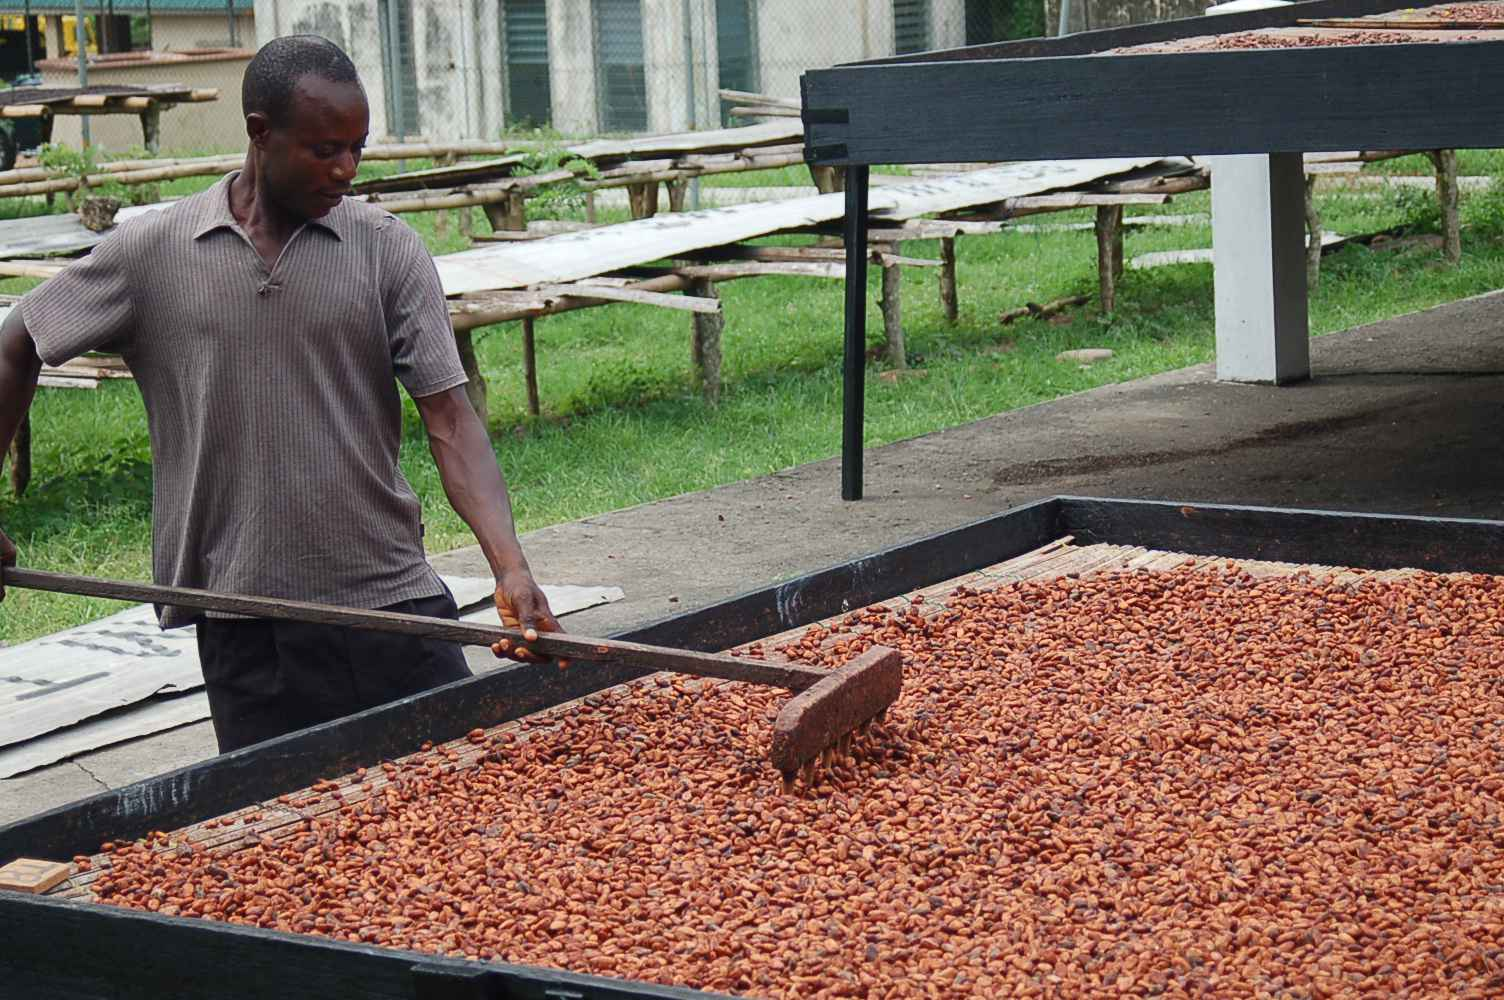 How do we see the Cocoa Farmer?